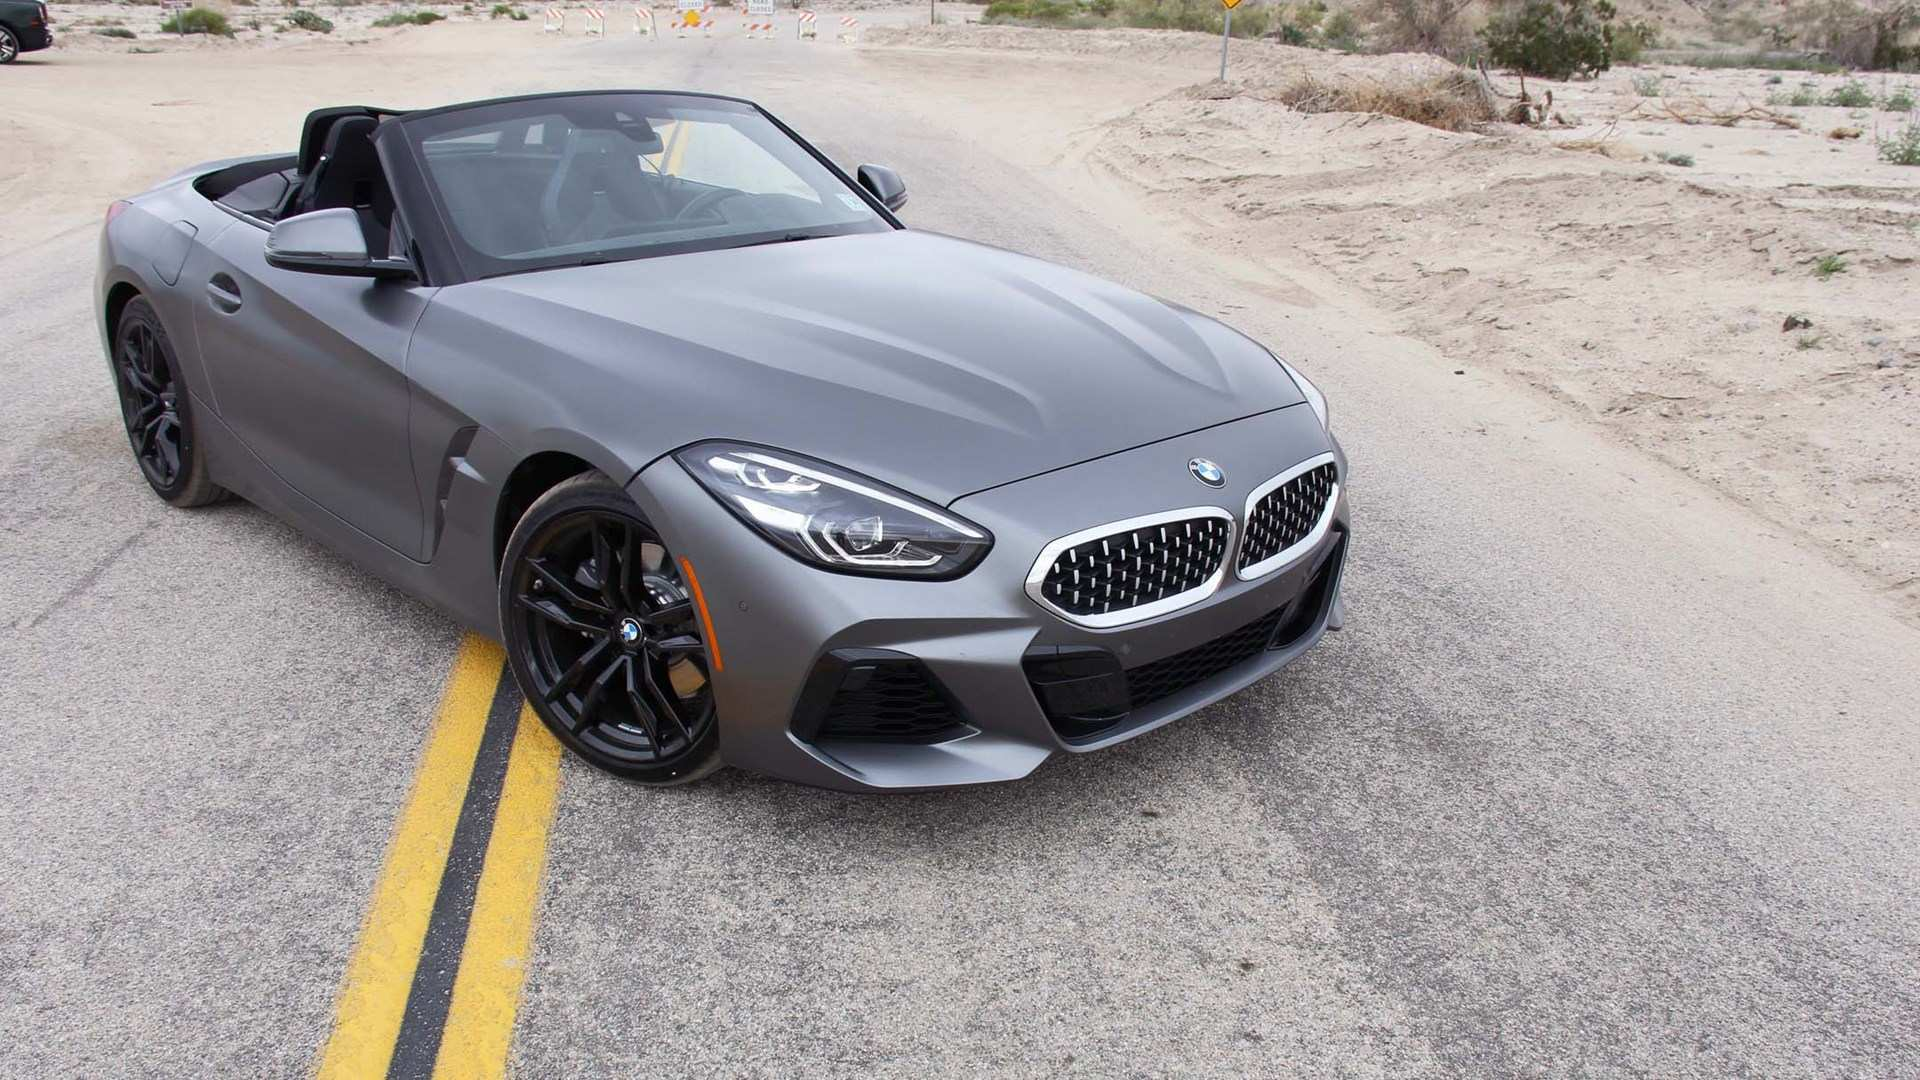 48 All New The Bmw Z4 2019 Engine First Drive Release Date by The Bmw Z4 2019 Engine First Drive